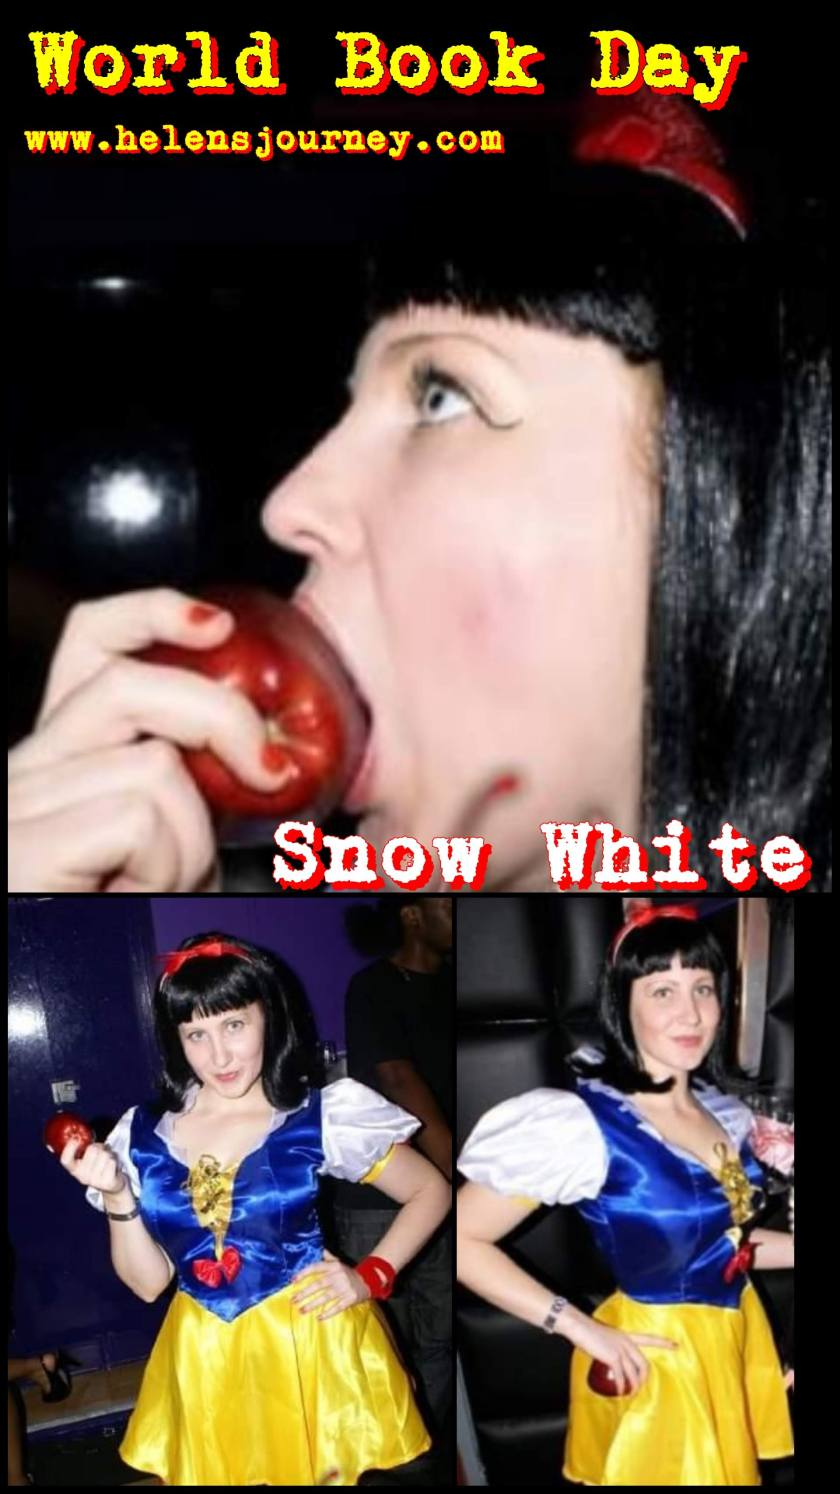 All about UK World Book Day and Snow White character costume idea